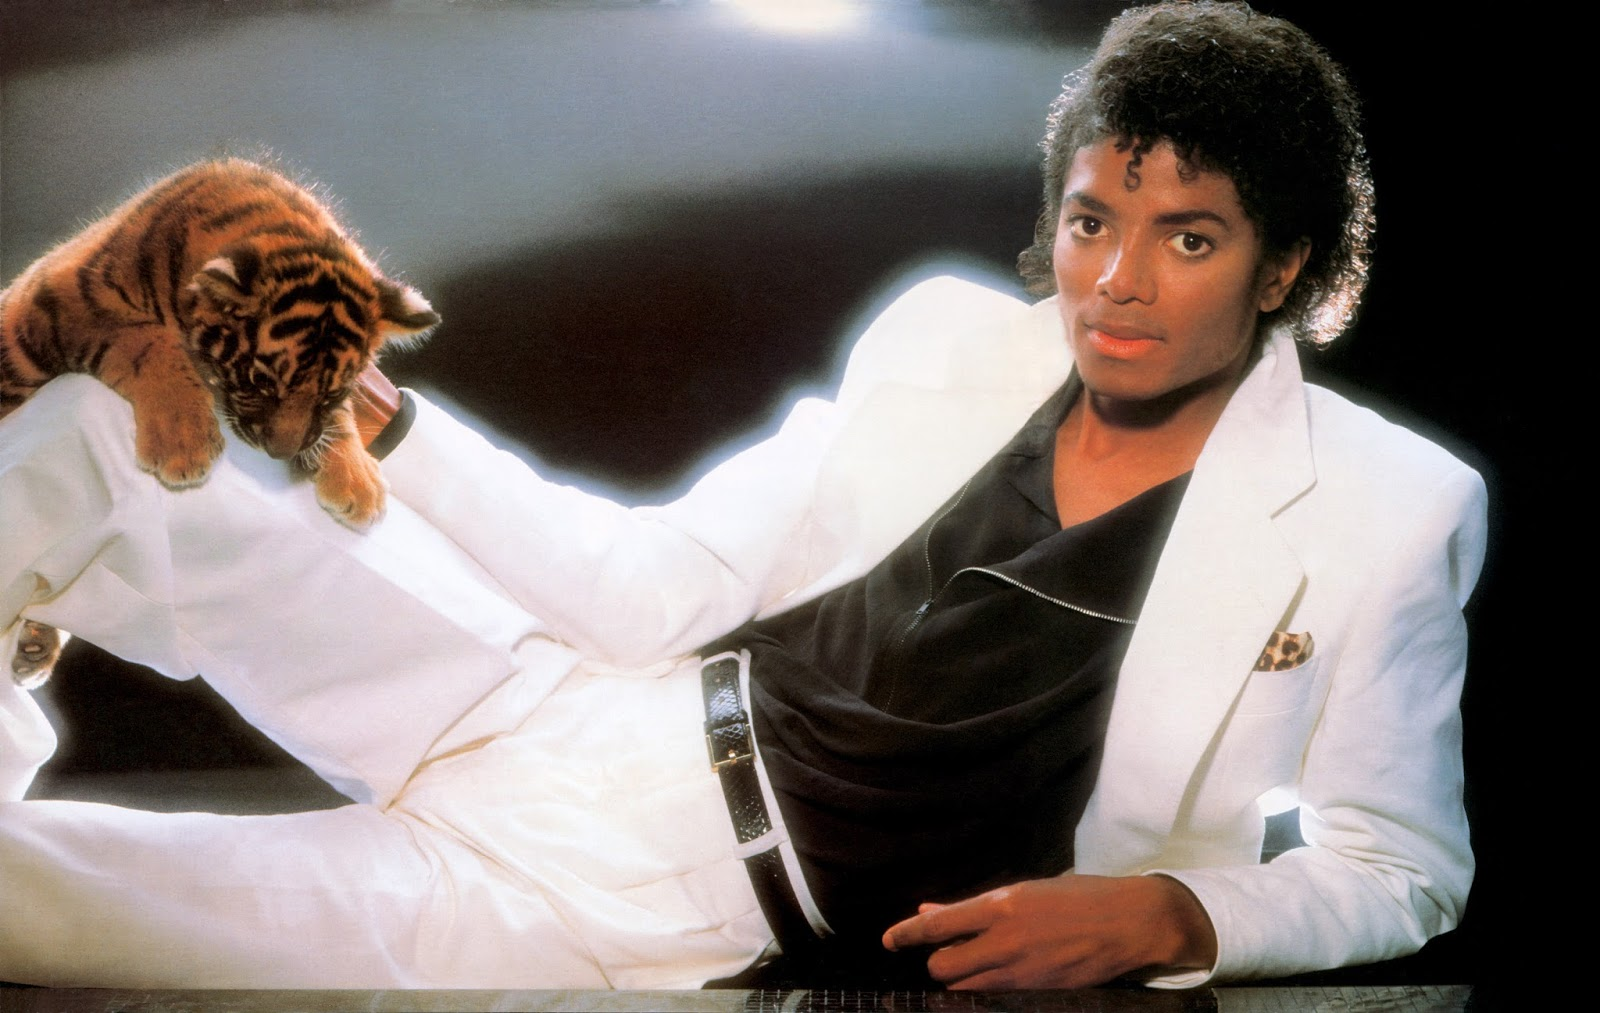 Thriller album free download